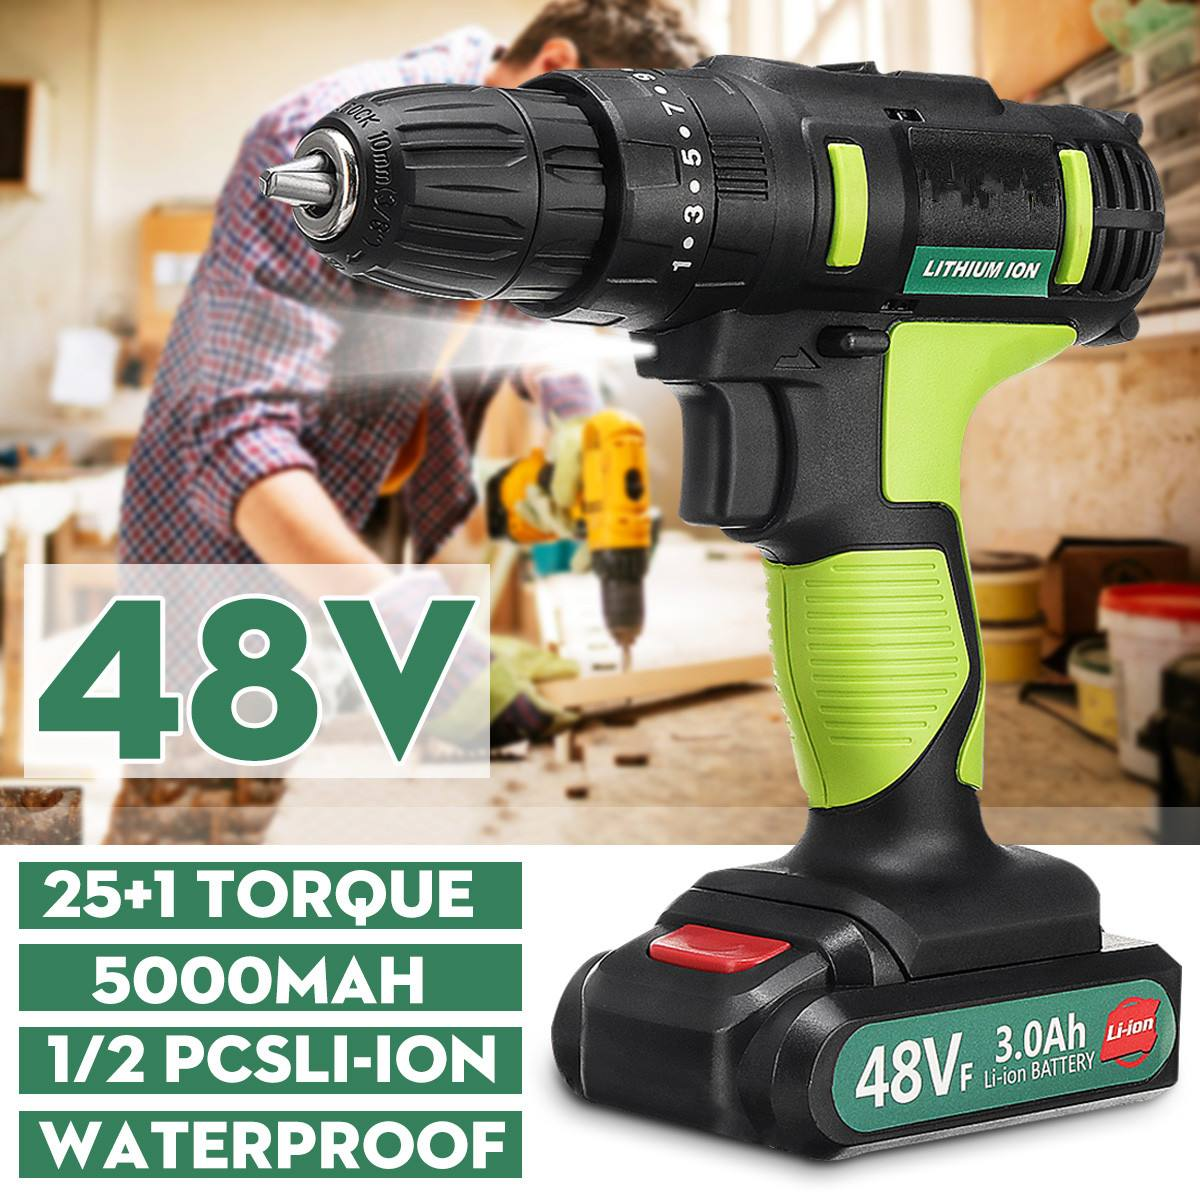 3 In 1 Electric Screwdriver 48VF 2-Speed Cordless Waterproof Electric Drill 25+1 Torque Power Tools With Rechargeable Battery